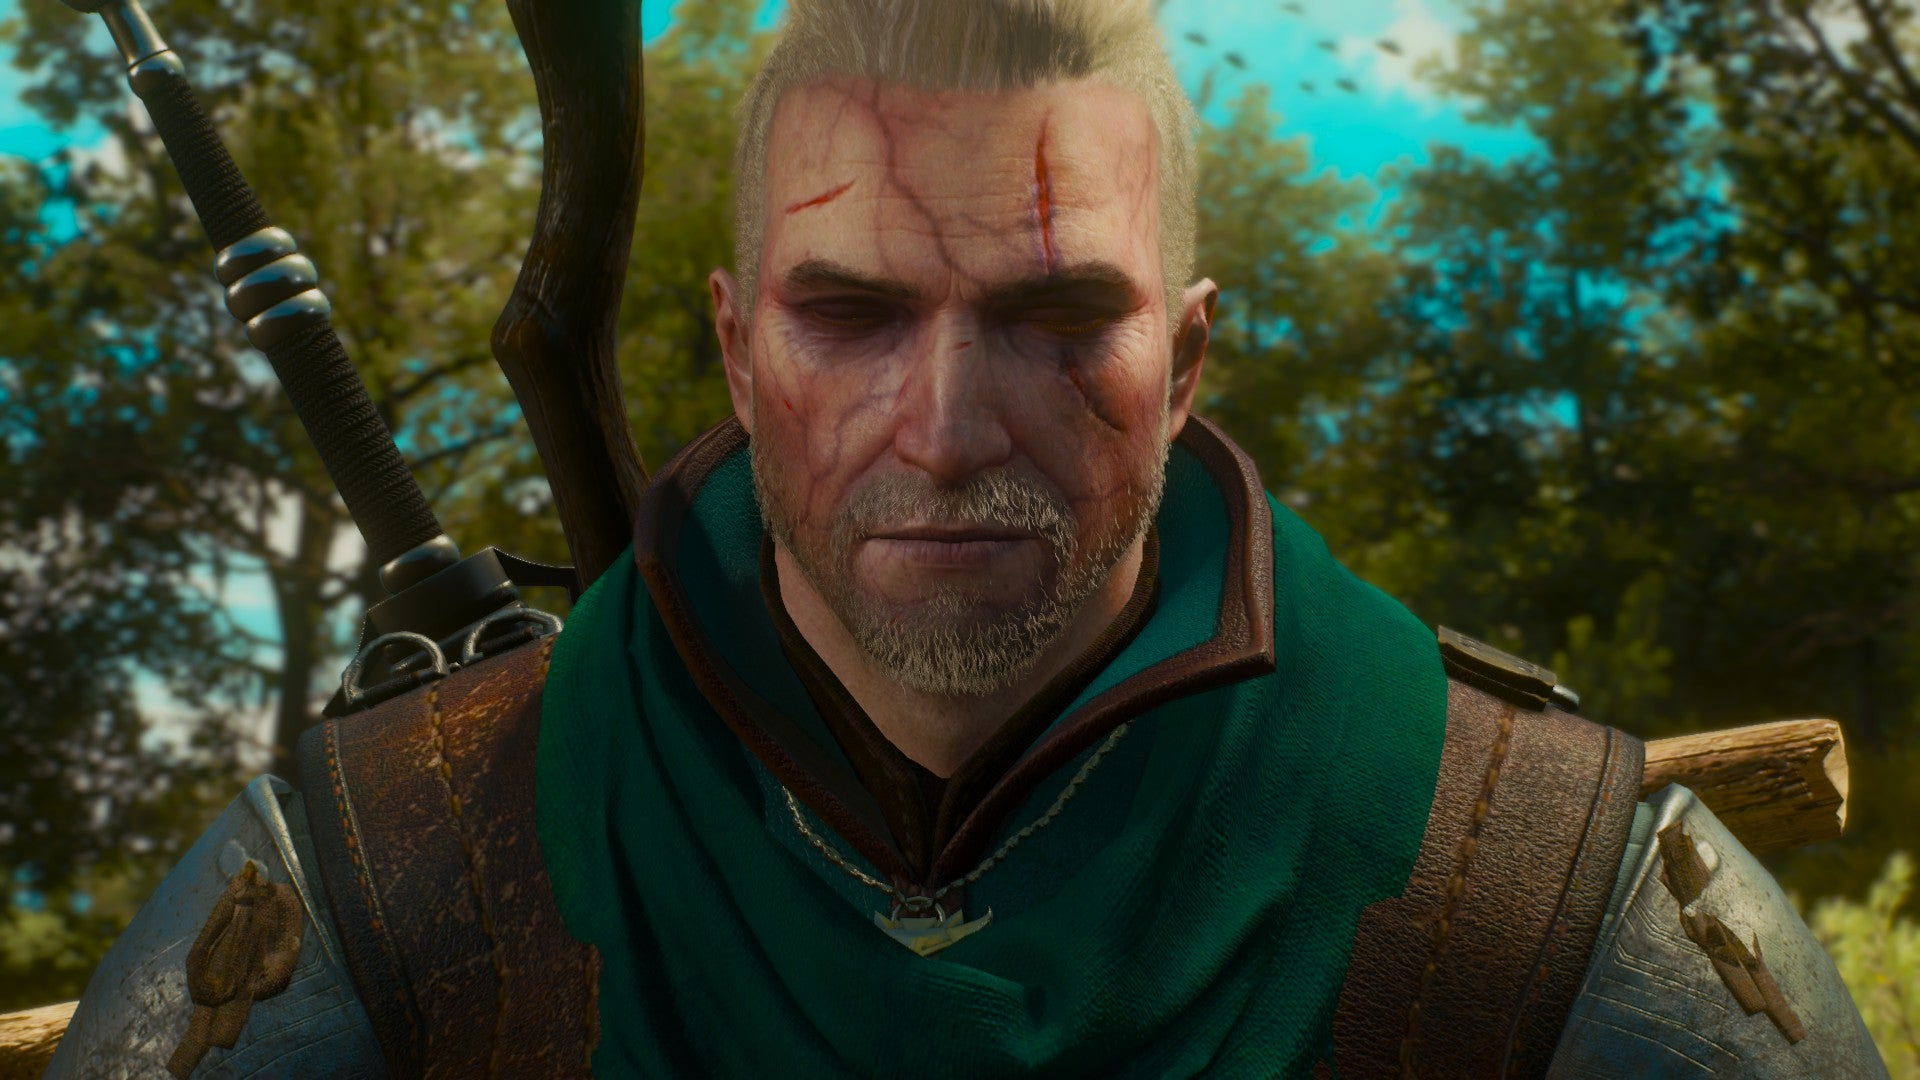 The Witcher 3 Comes To Switch This Year